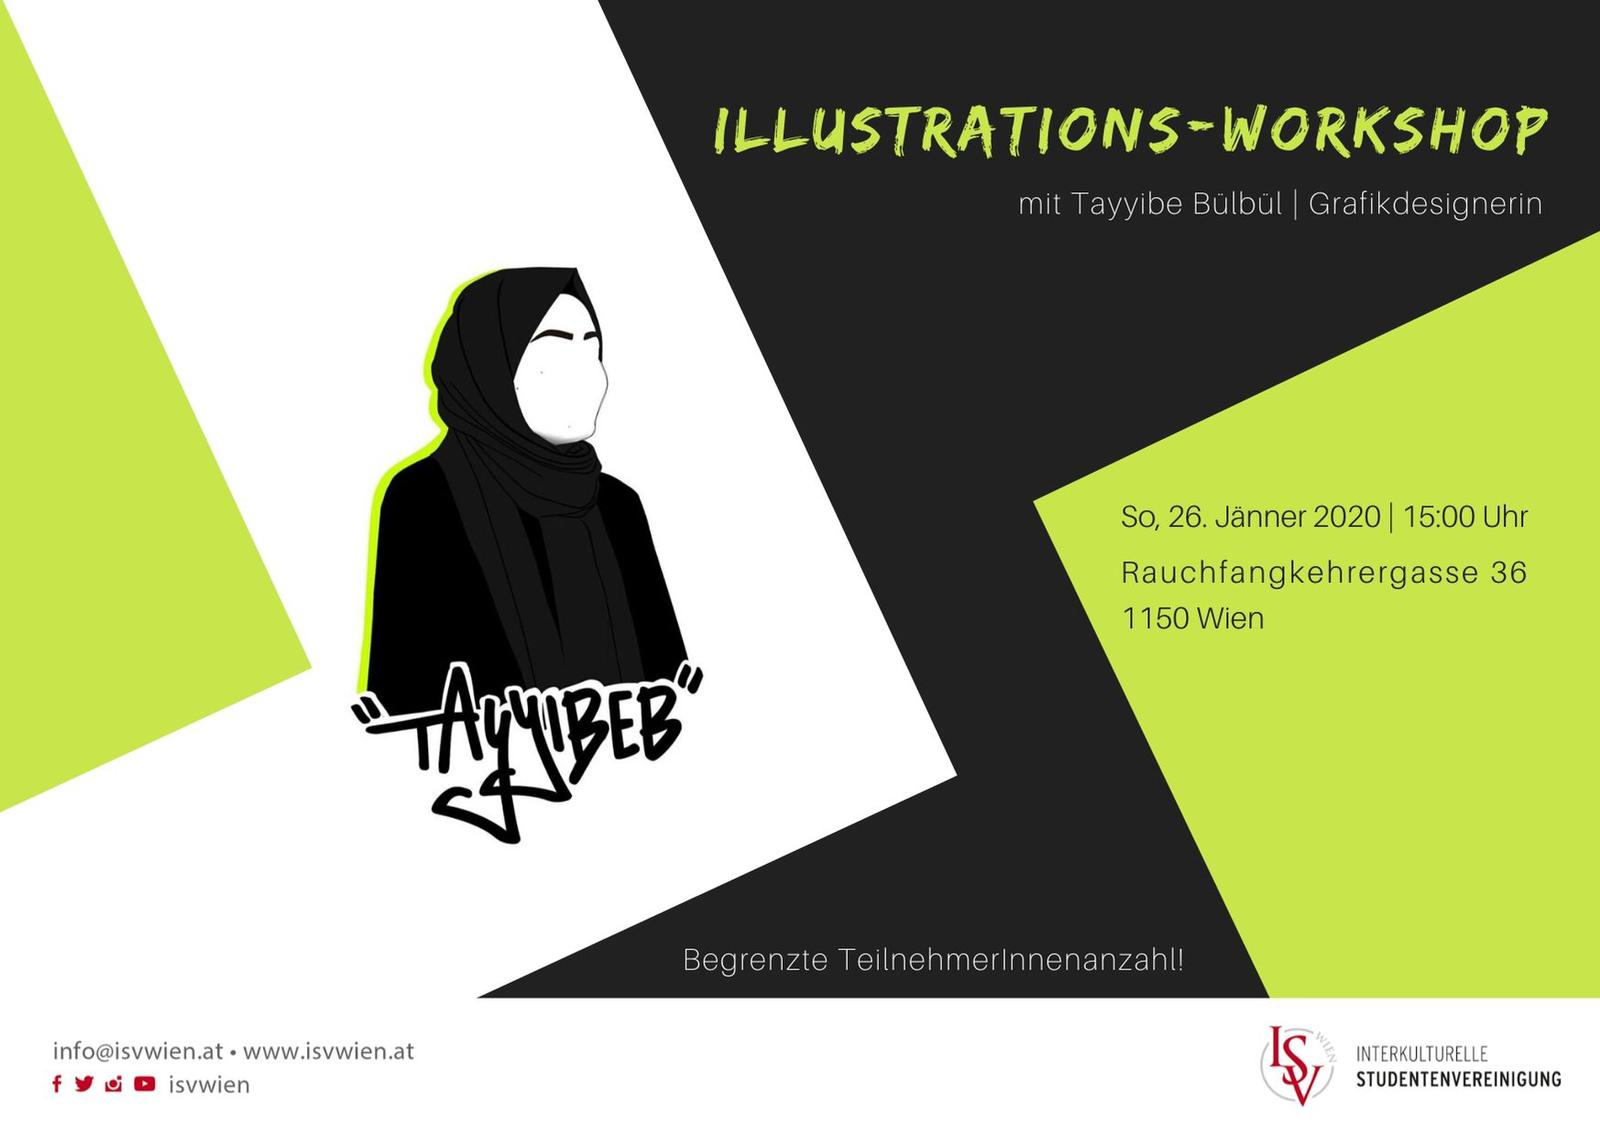 Illustrations-Workshop